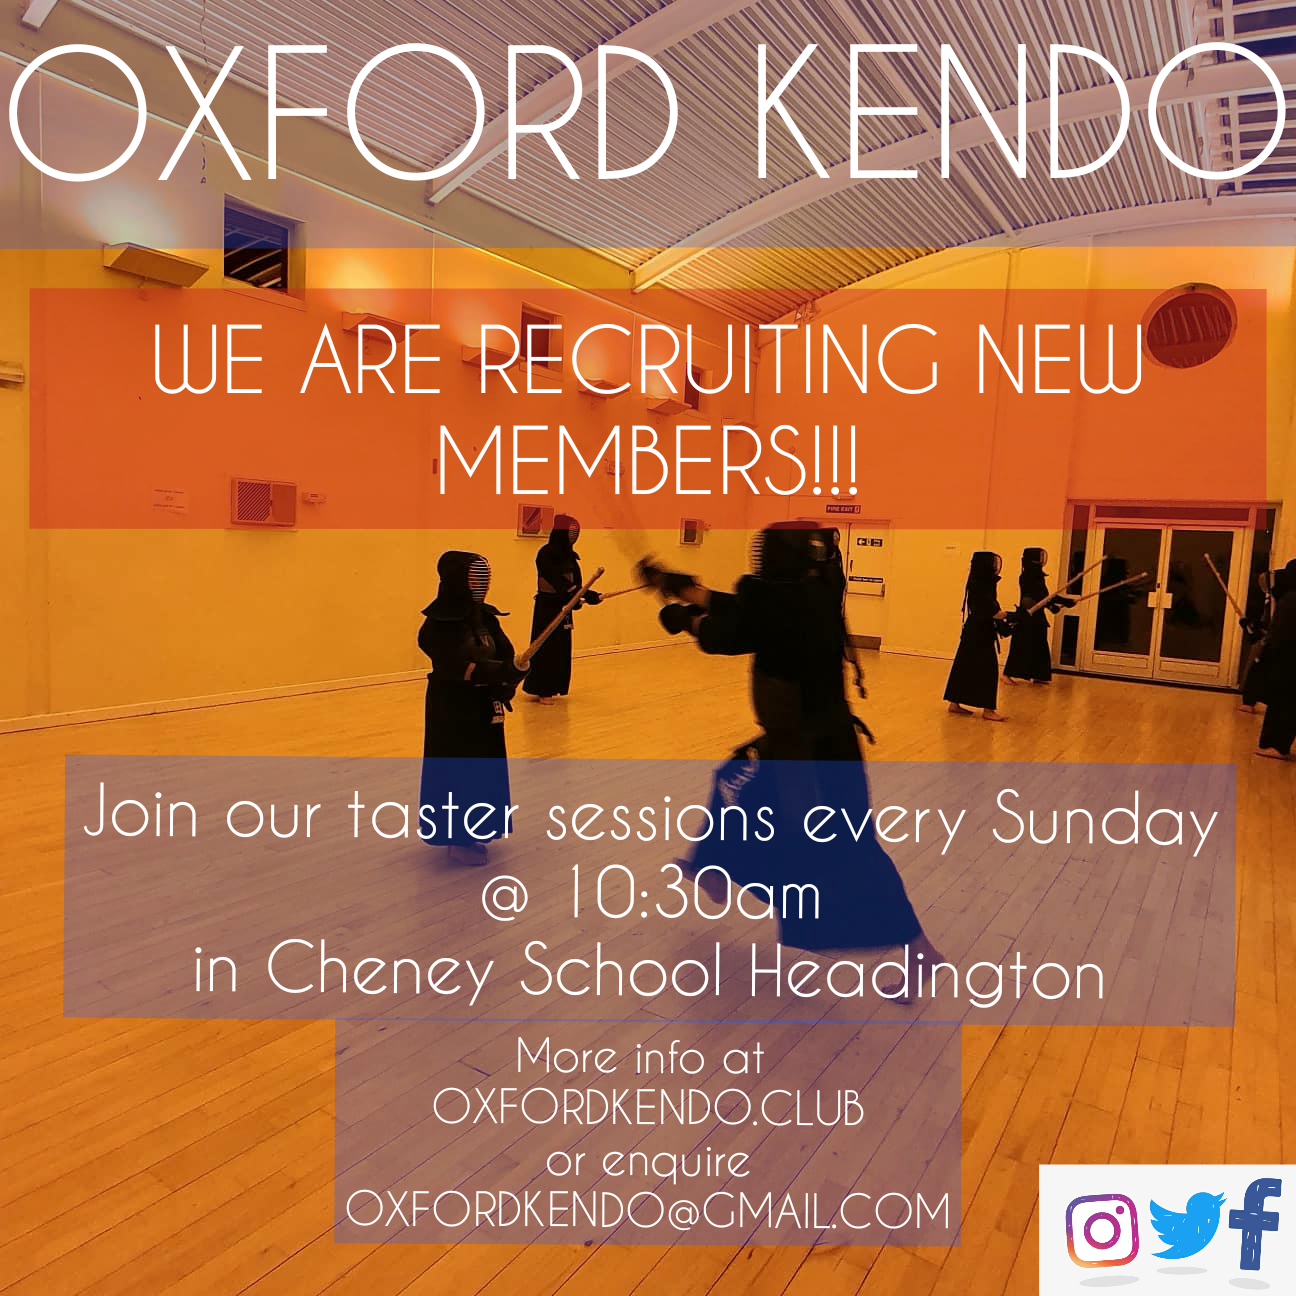 Oxford KENDO recruiting new members!!!